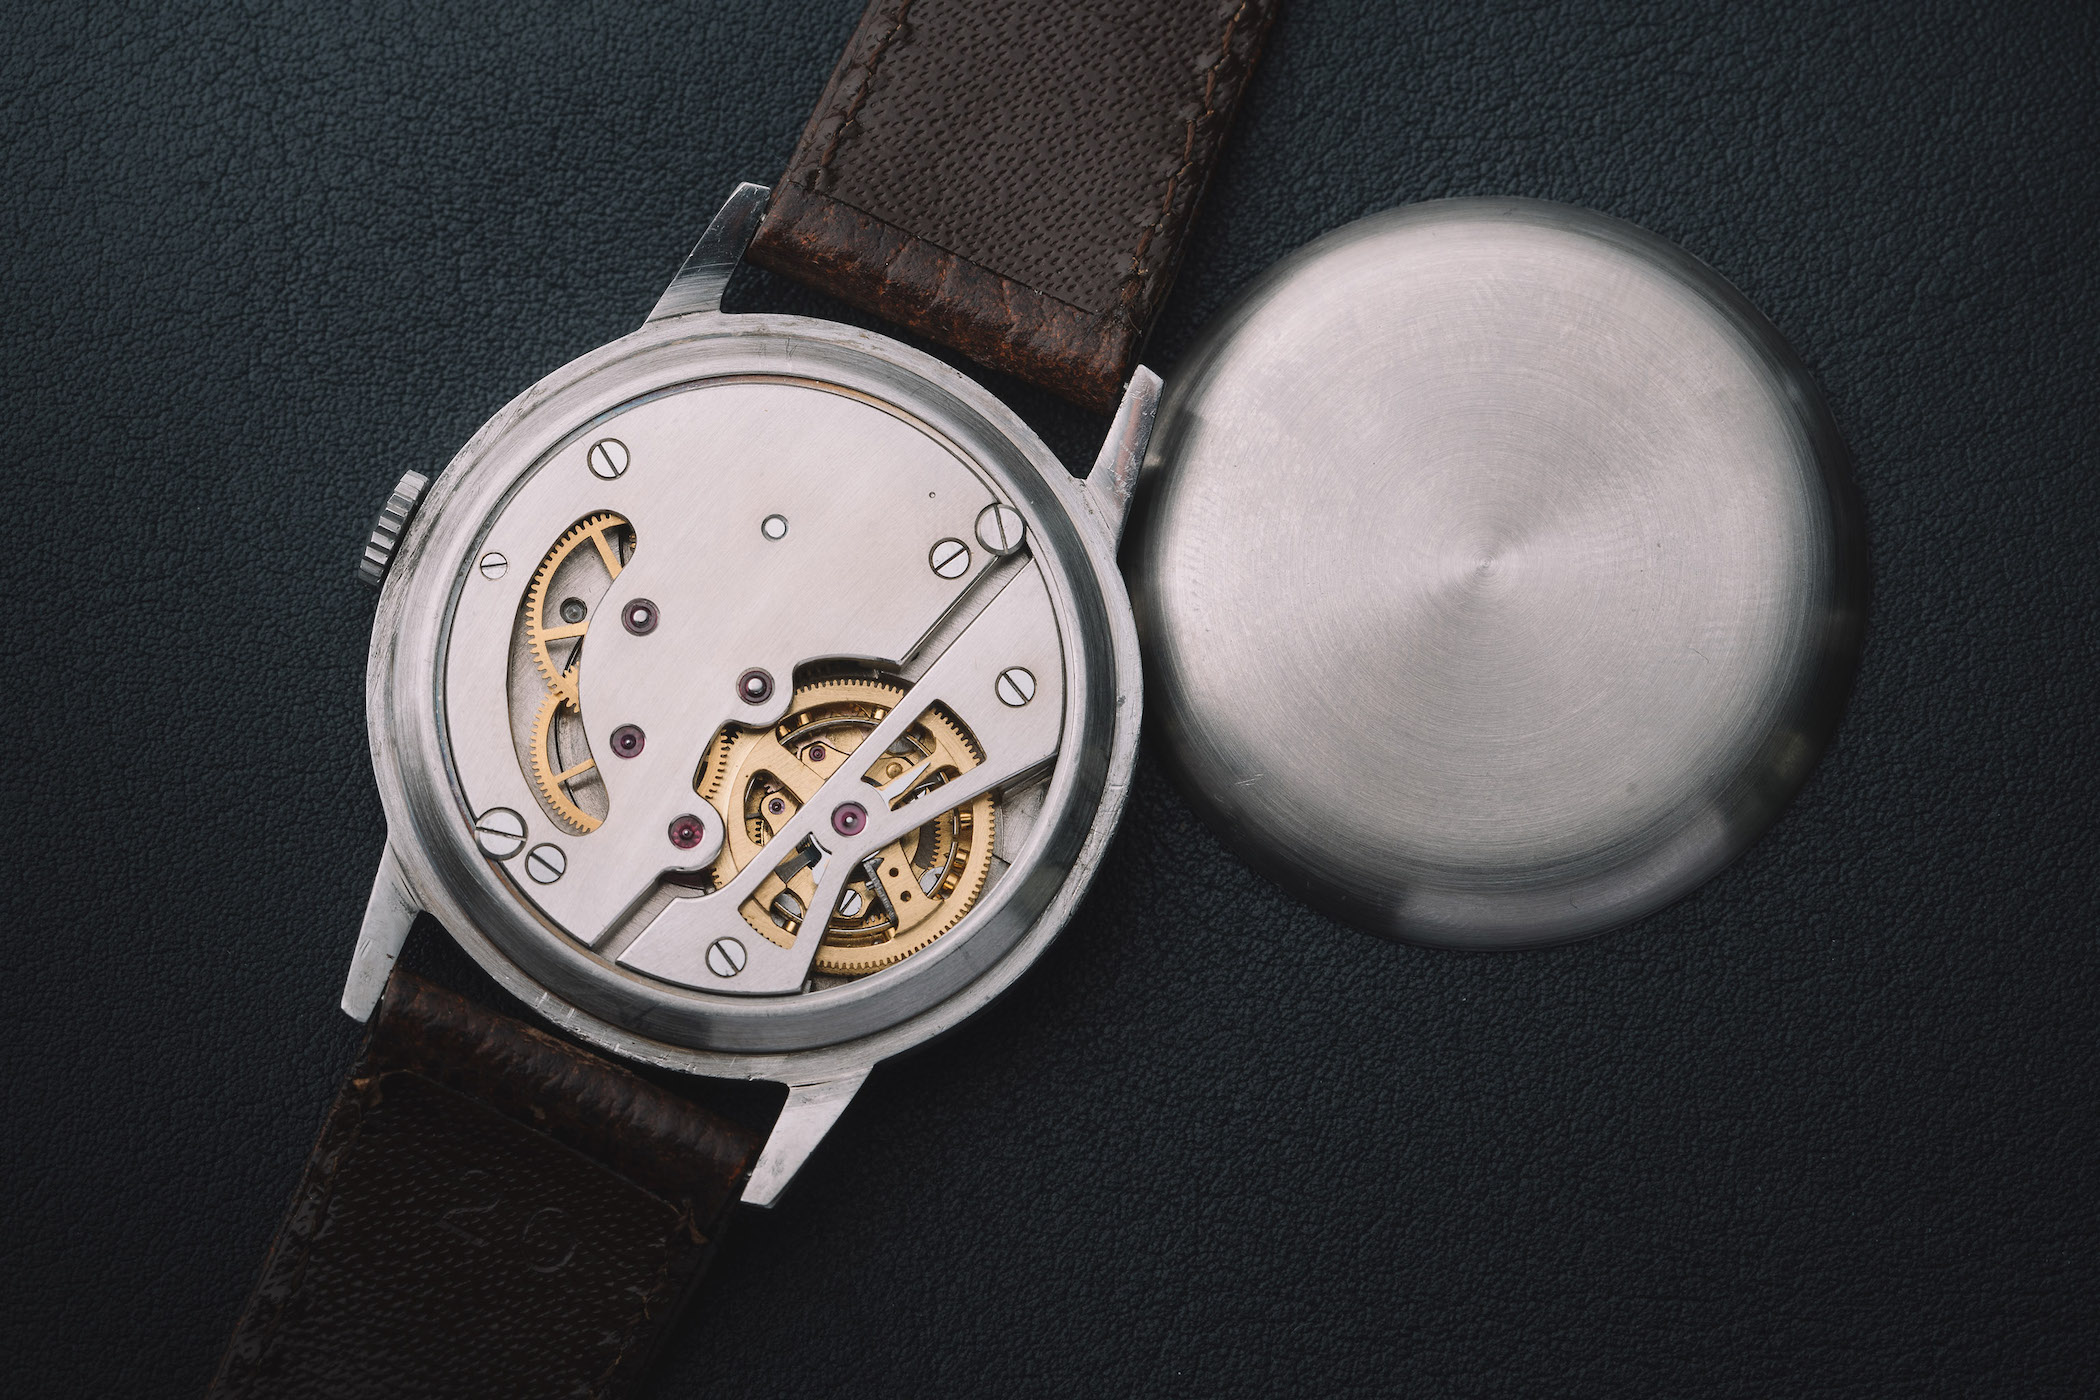 Omega Tourbillon 30 from 1947 - One Of The First Tourbillon Wristwatches Ever Made - 22